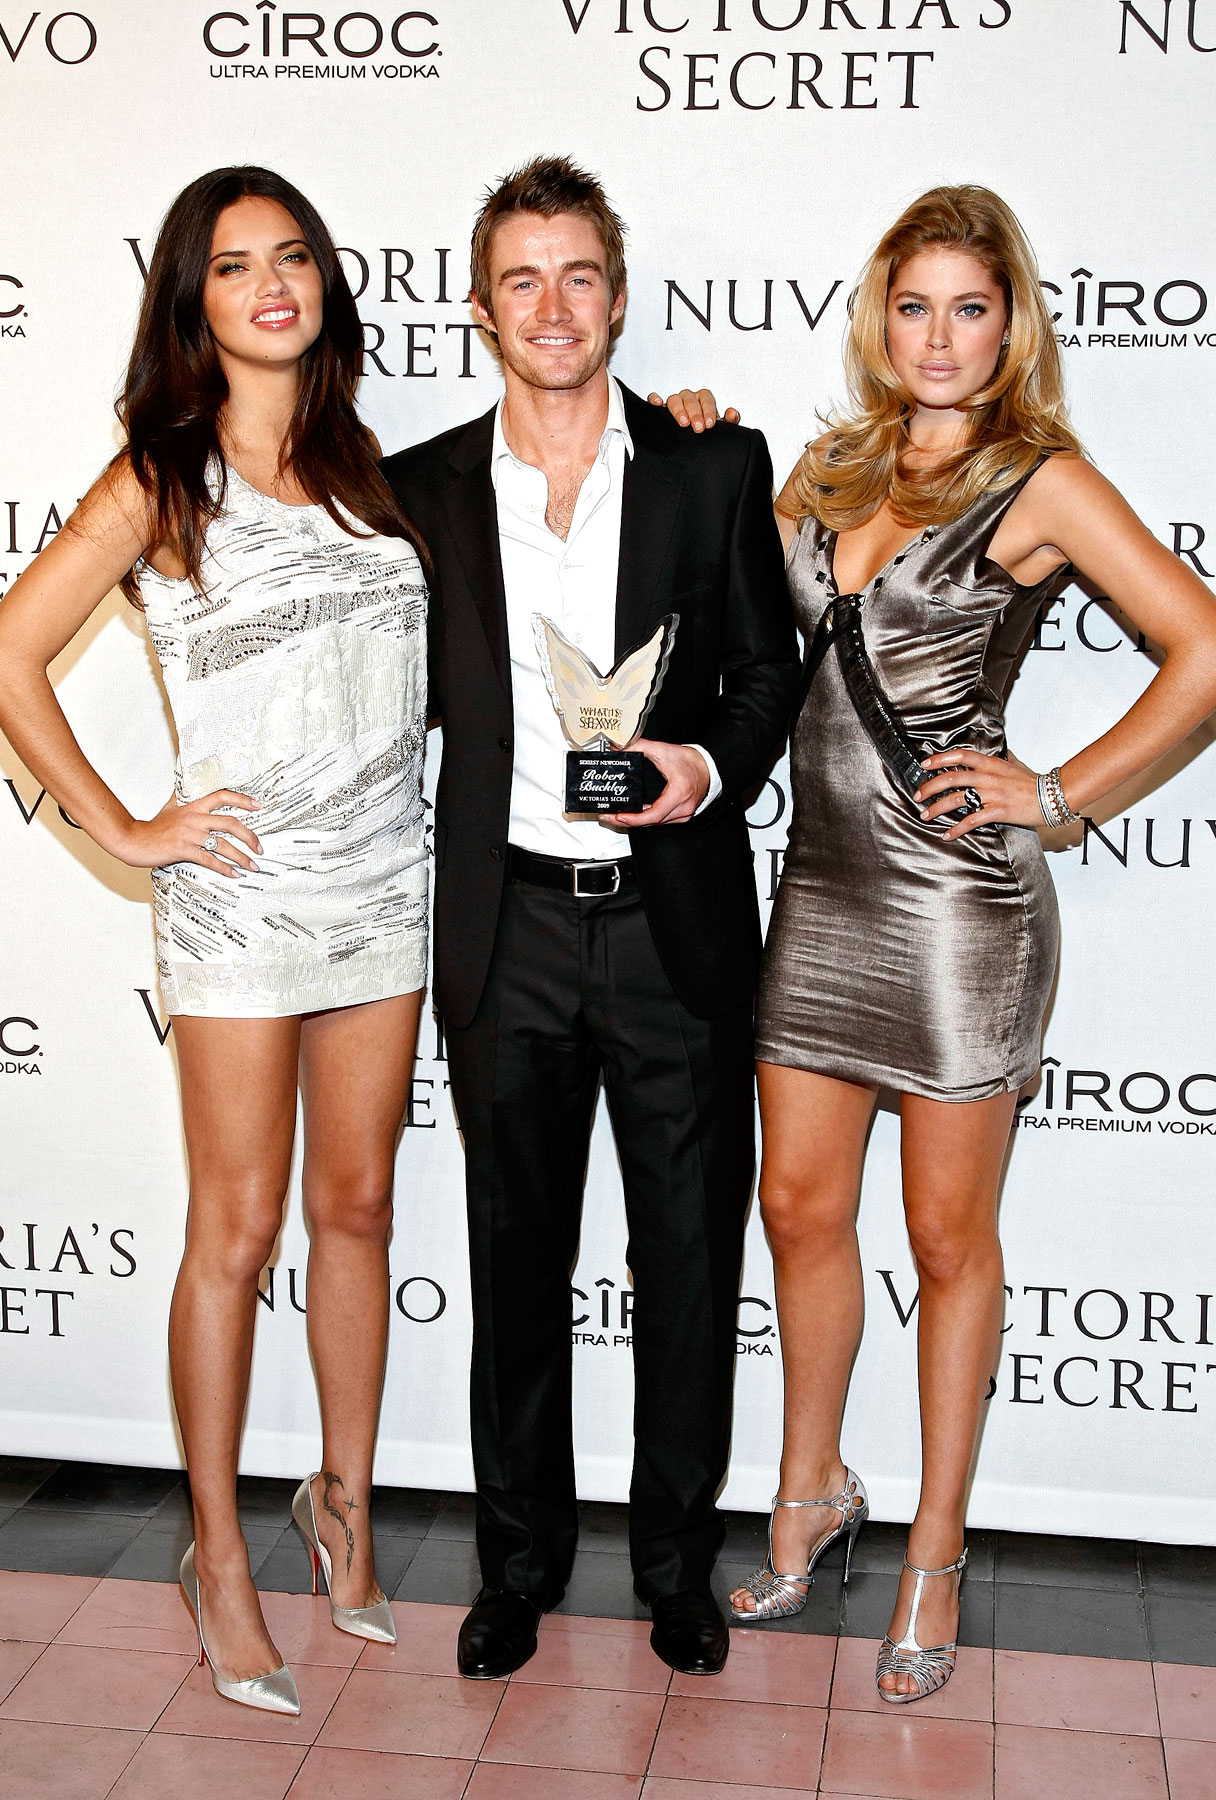 Robert Buckley Makes Sexy Time With Victoria's Secret Angels